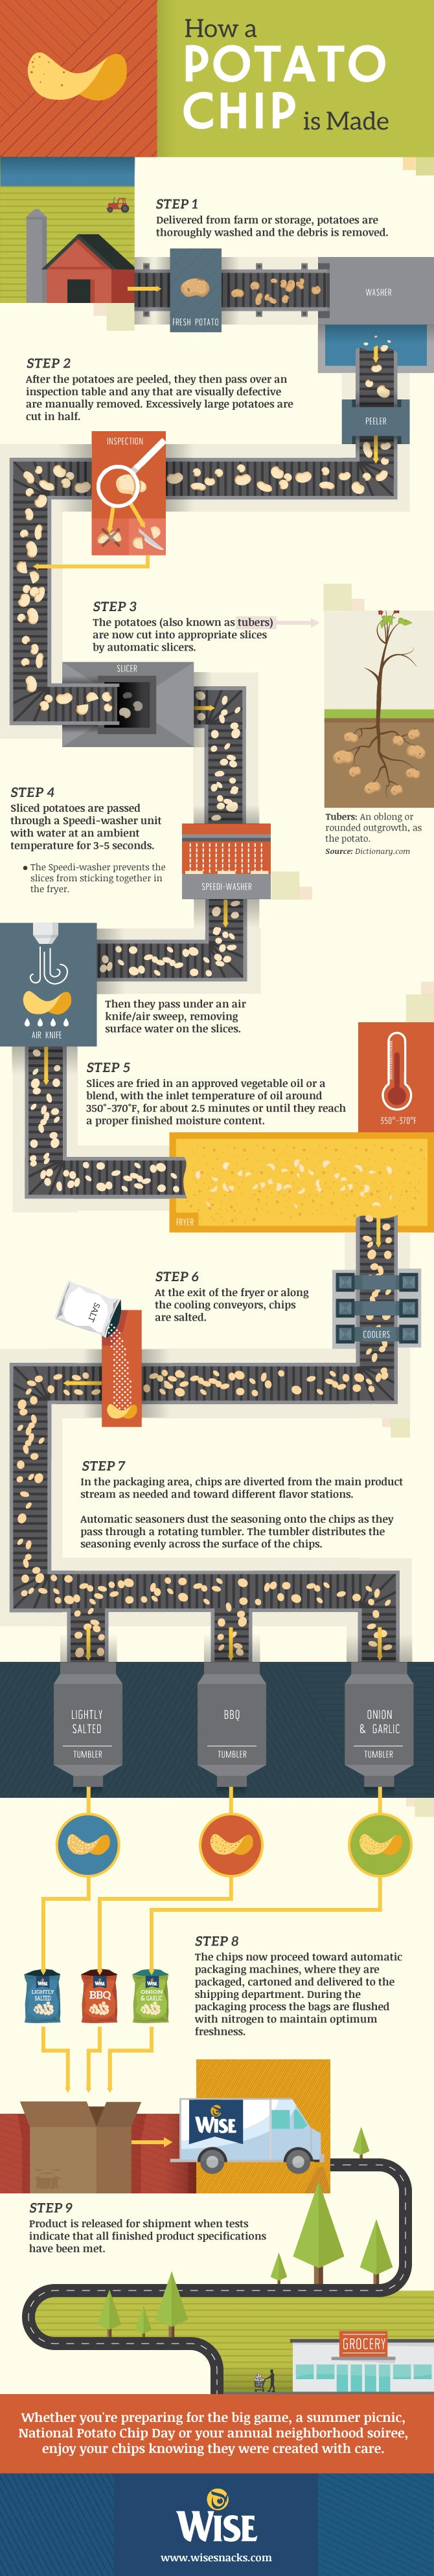 Insider Knowledge: How a Potato Chip is Made [Infographic]